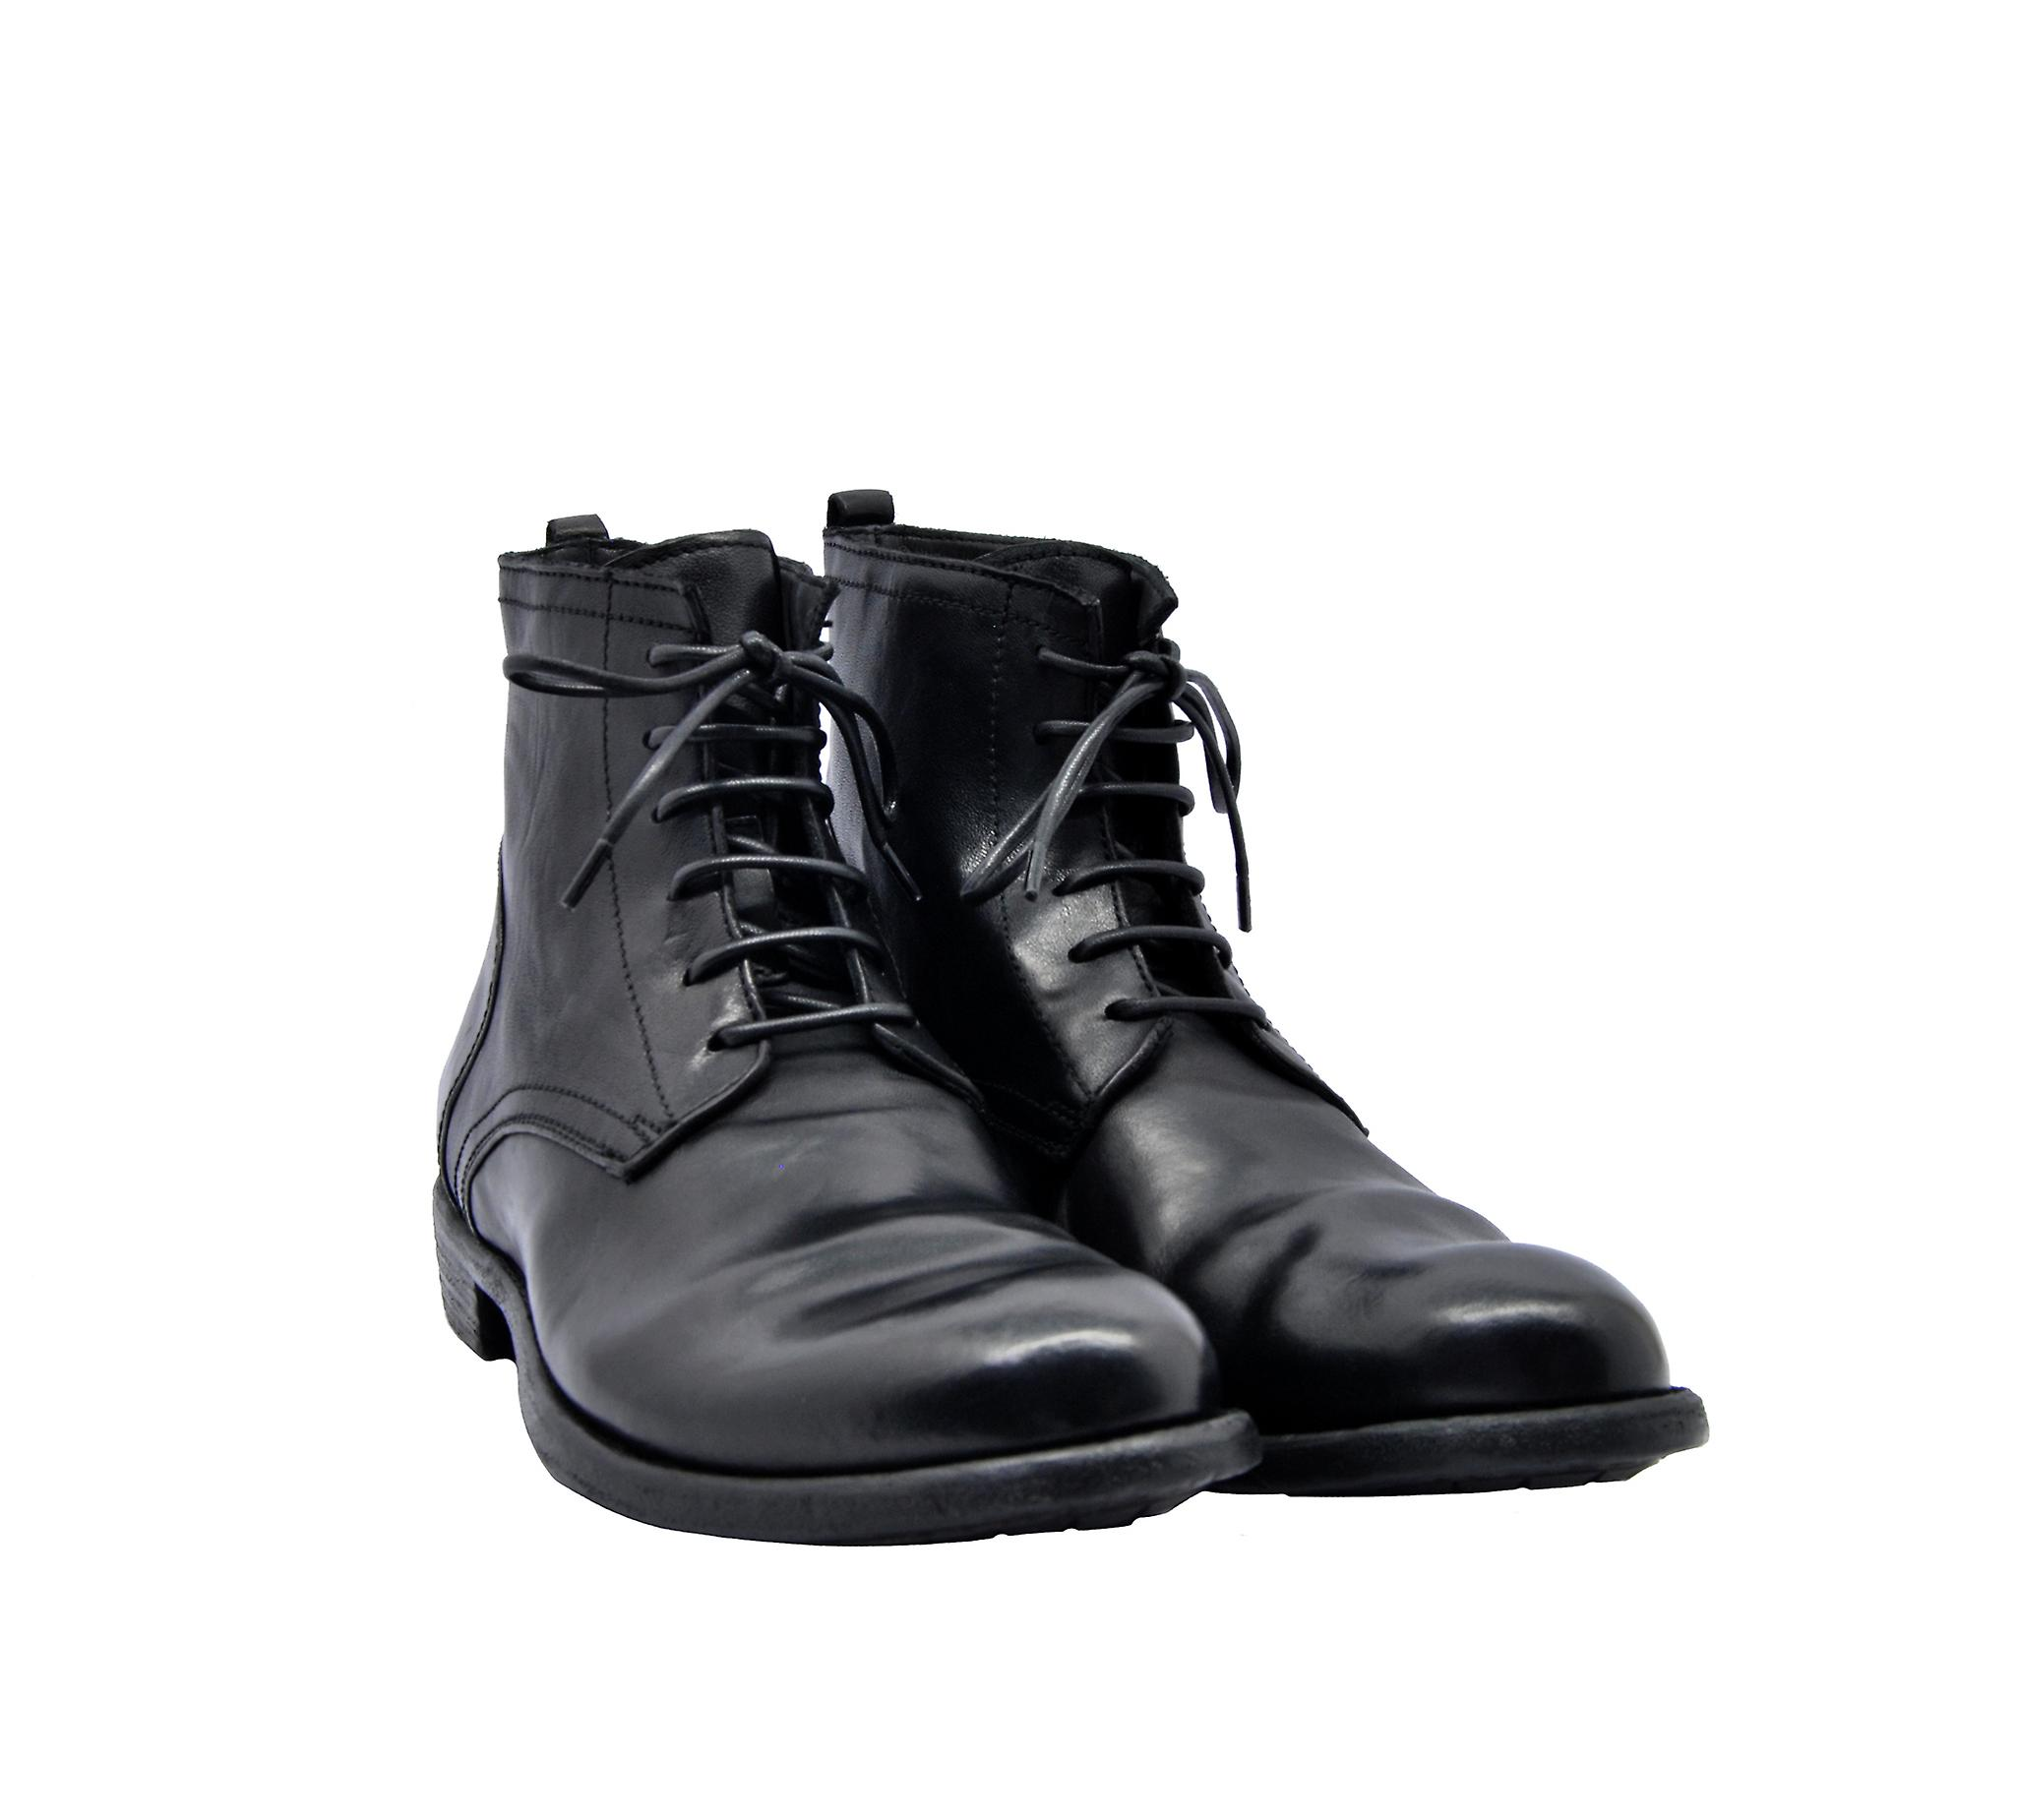 Officine Creative Mars016 Women's Black Leather Ankle Boots